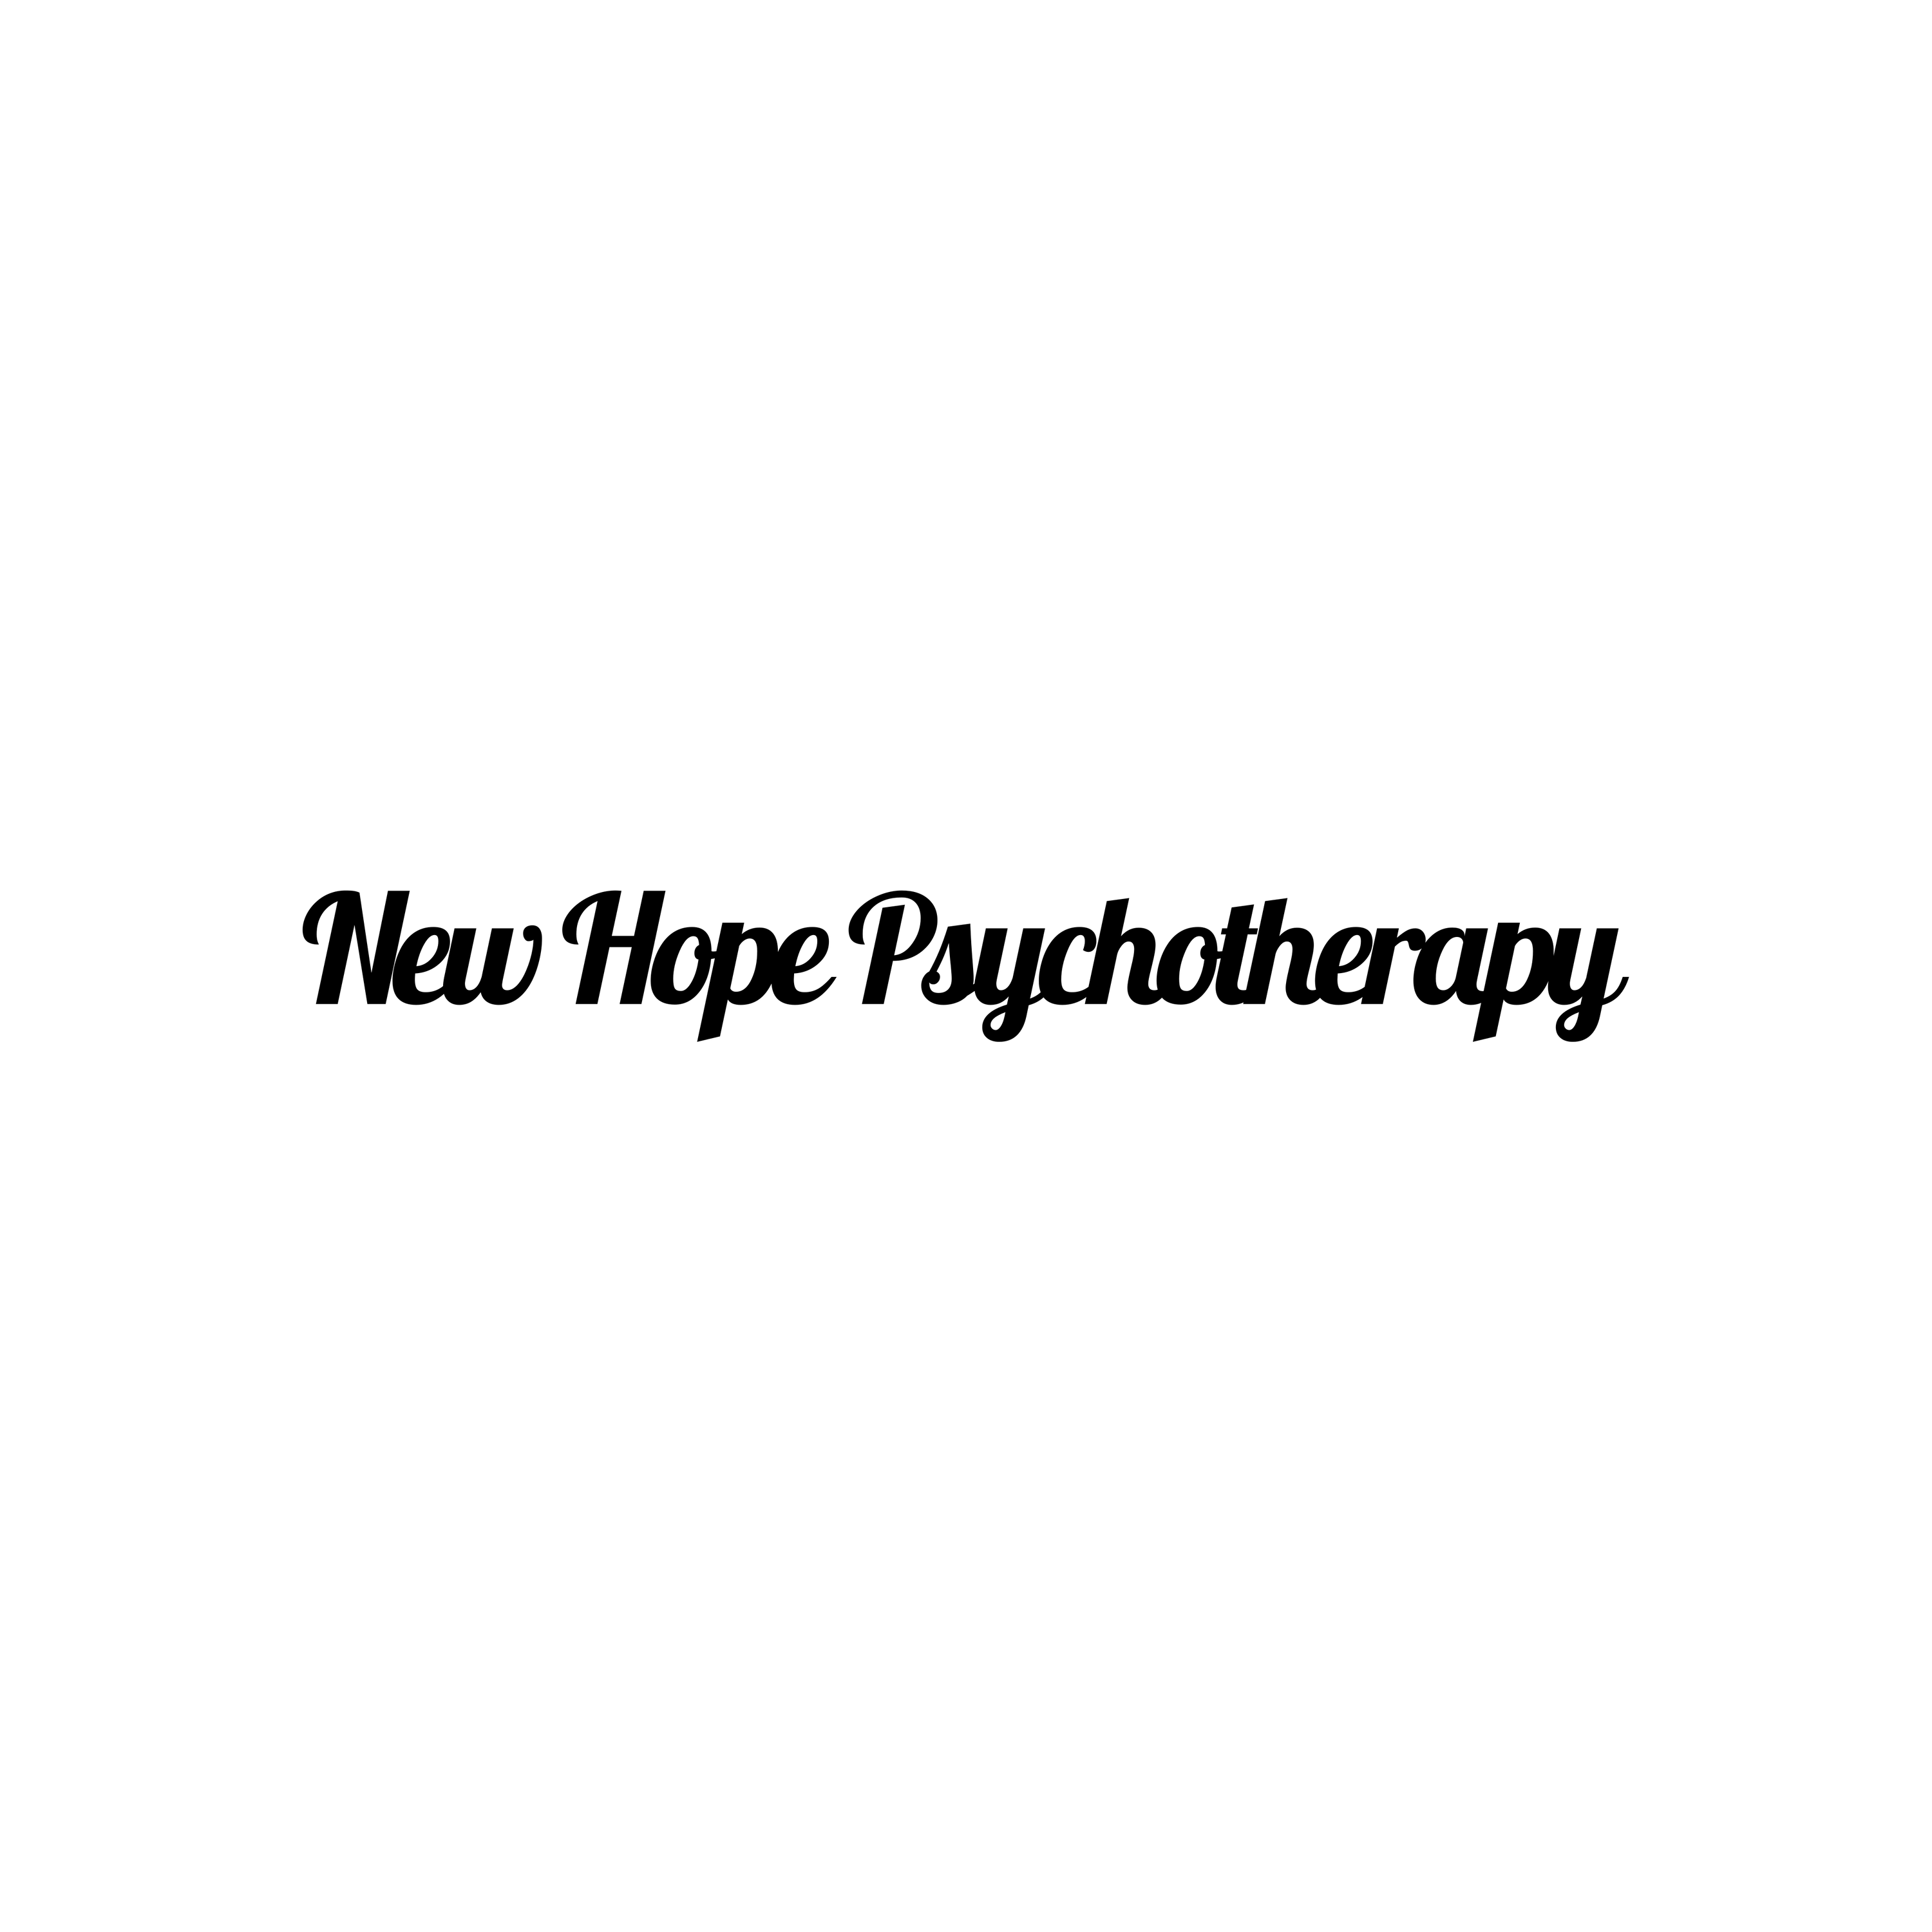 New Hope Psychotherapy